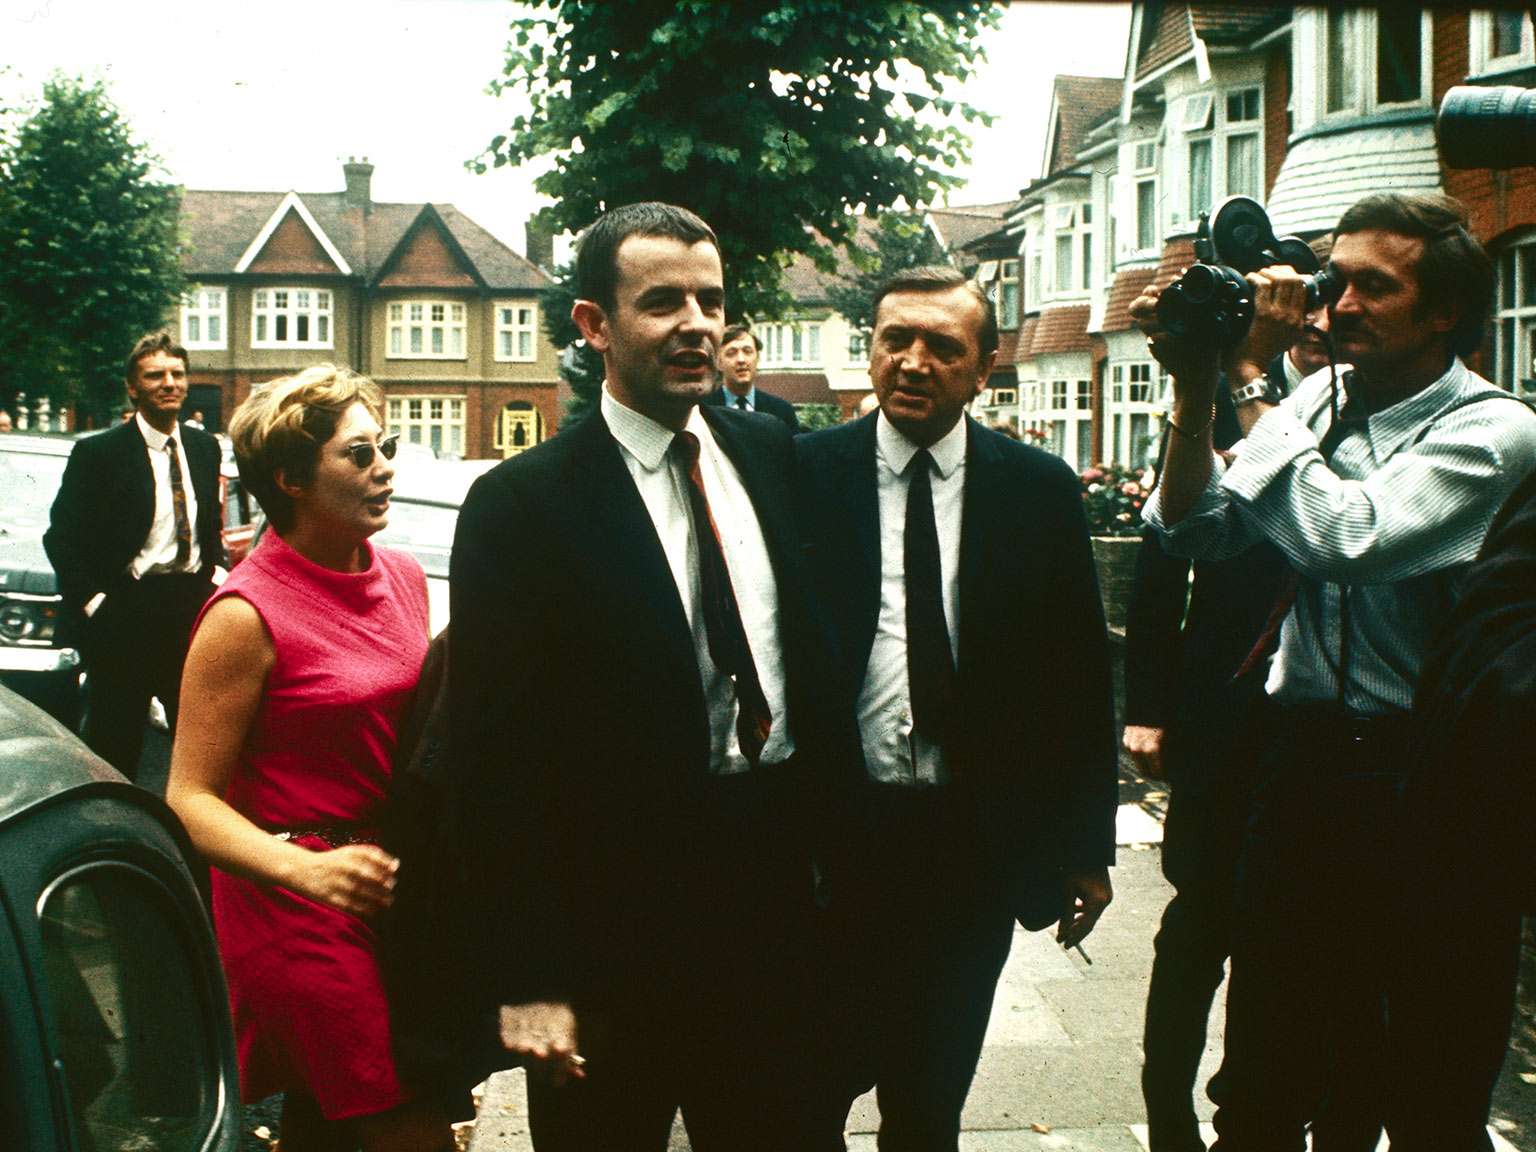 Brooke, with his wife, arrives home in North London, 24 July 1969